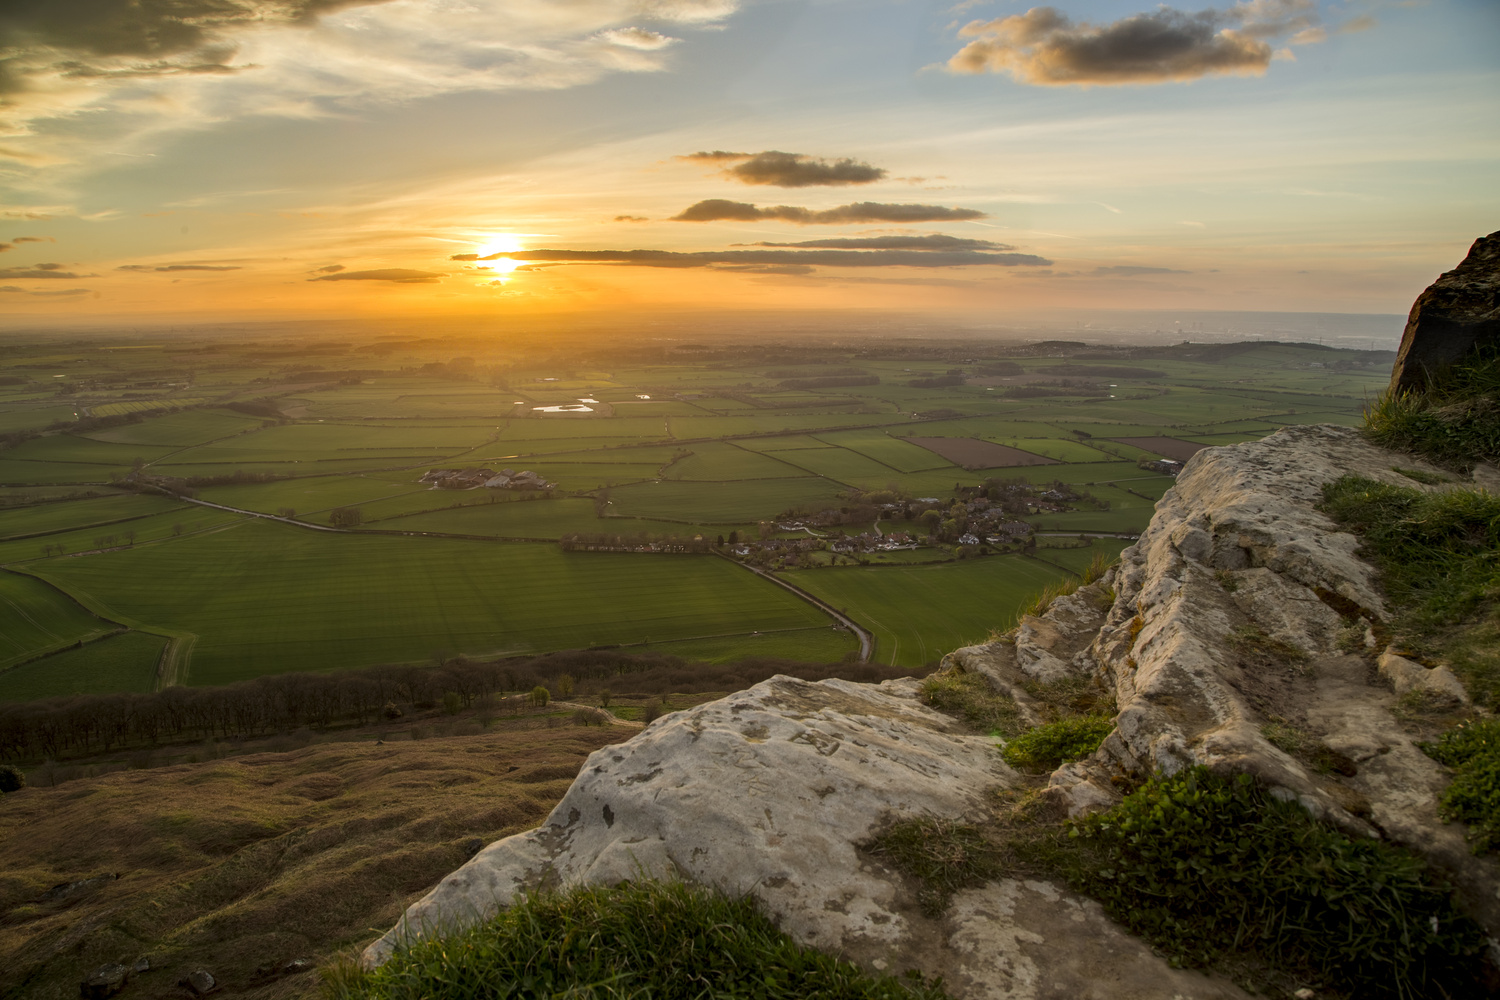 Sunset from the top of Roseberry Topping by Chris Slasor